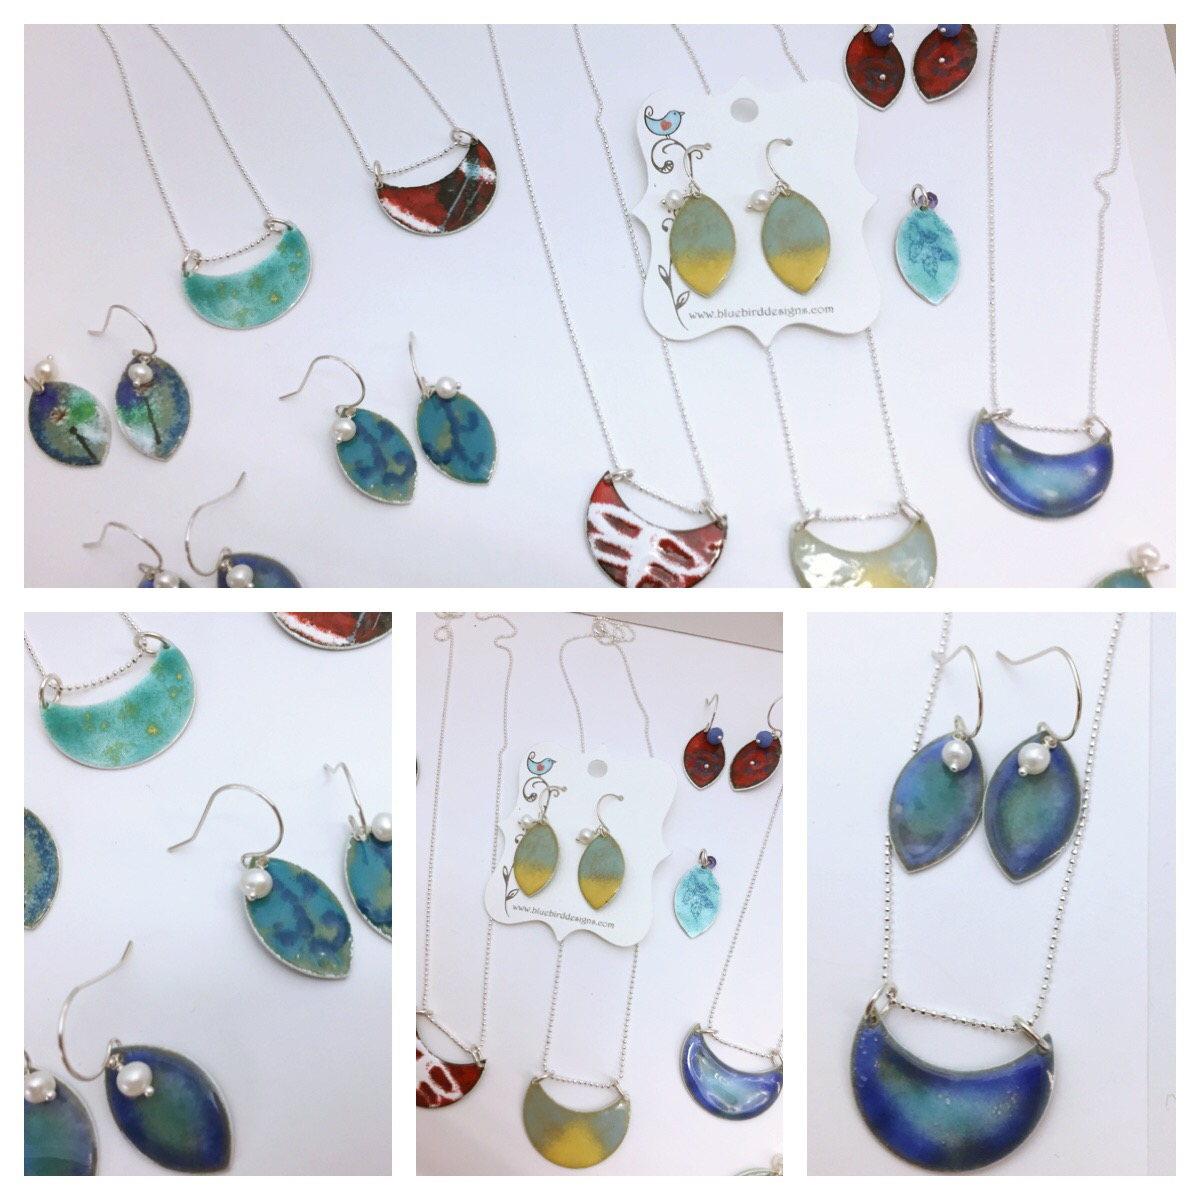 Picture's of last night's class creations! Beautiful work by all! Come make your own tonight!